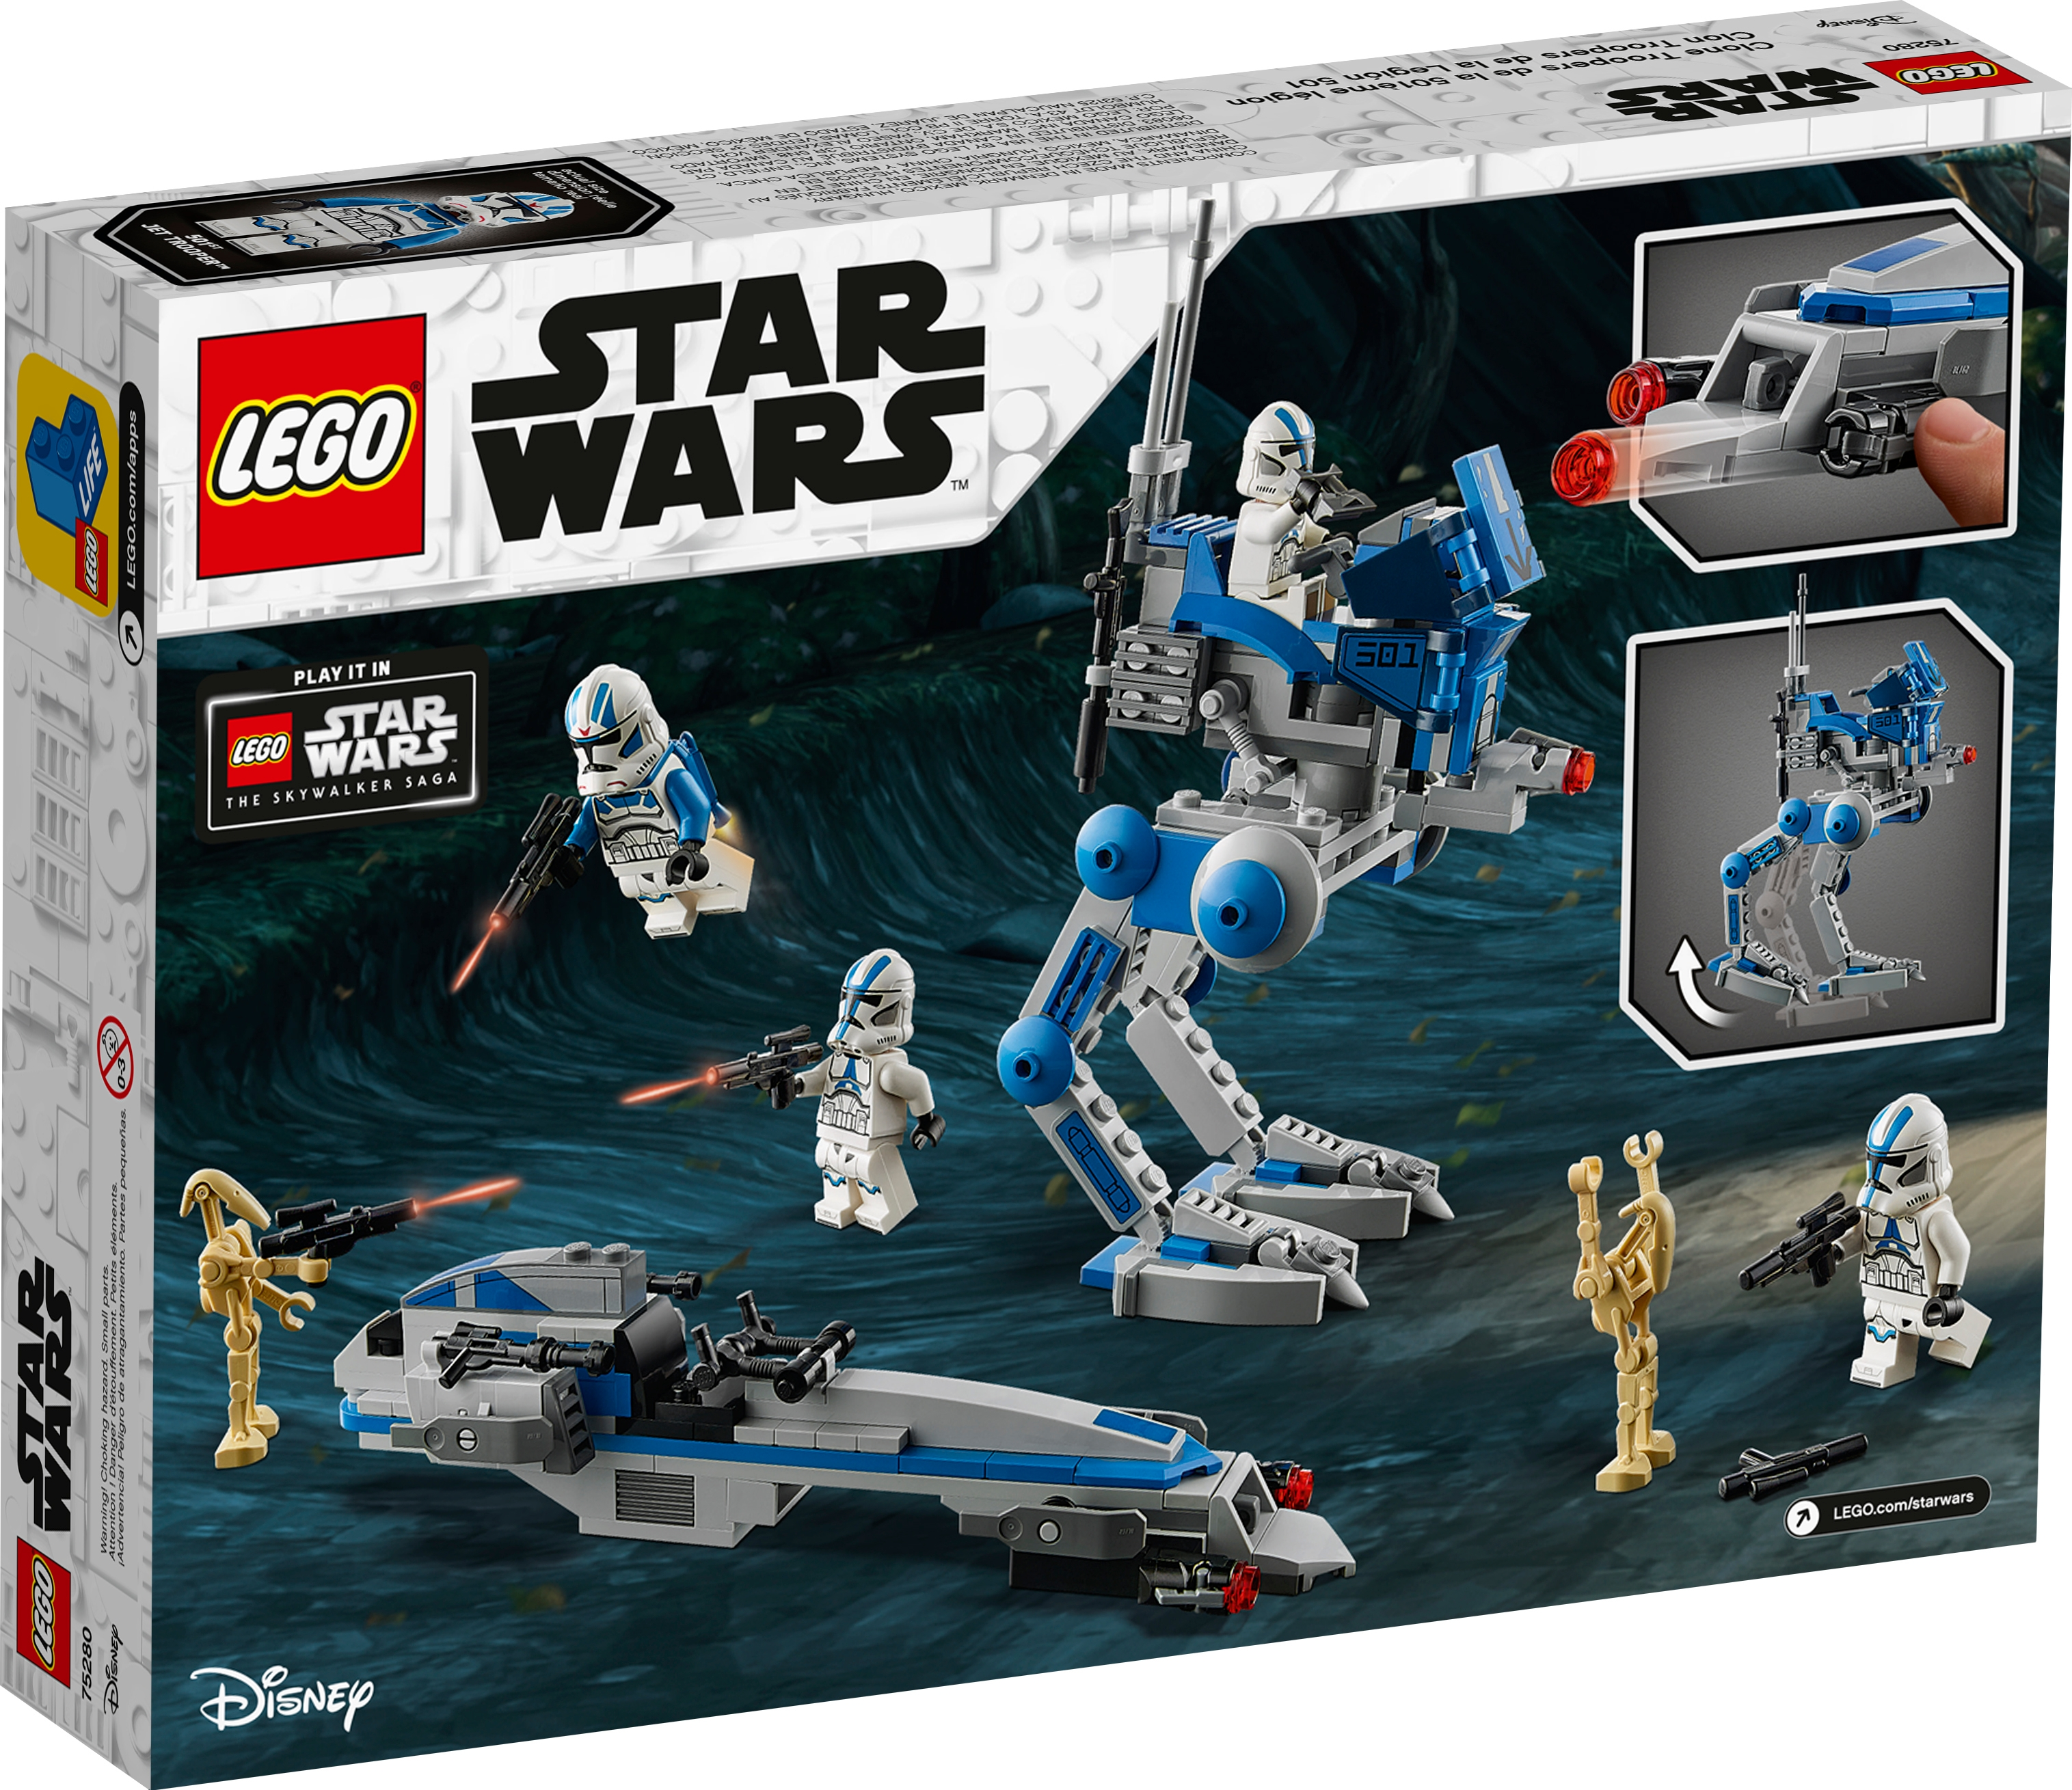 Lego Star Wars 75280 501st Legion Battle Pack BRAND NEW /& SEALED NEW RELEASE